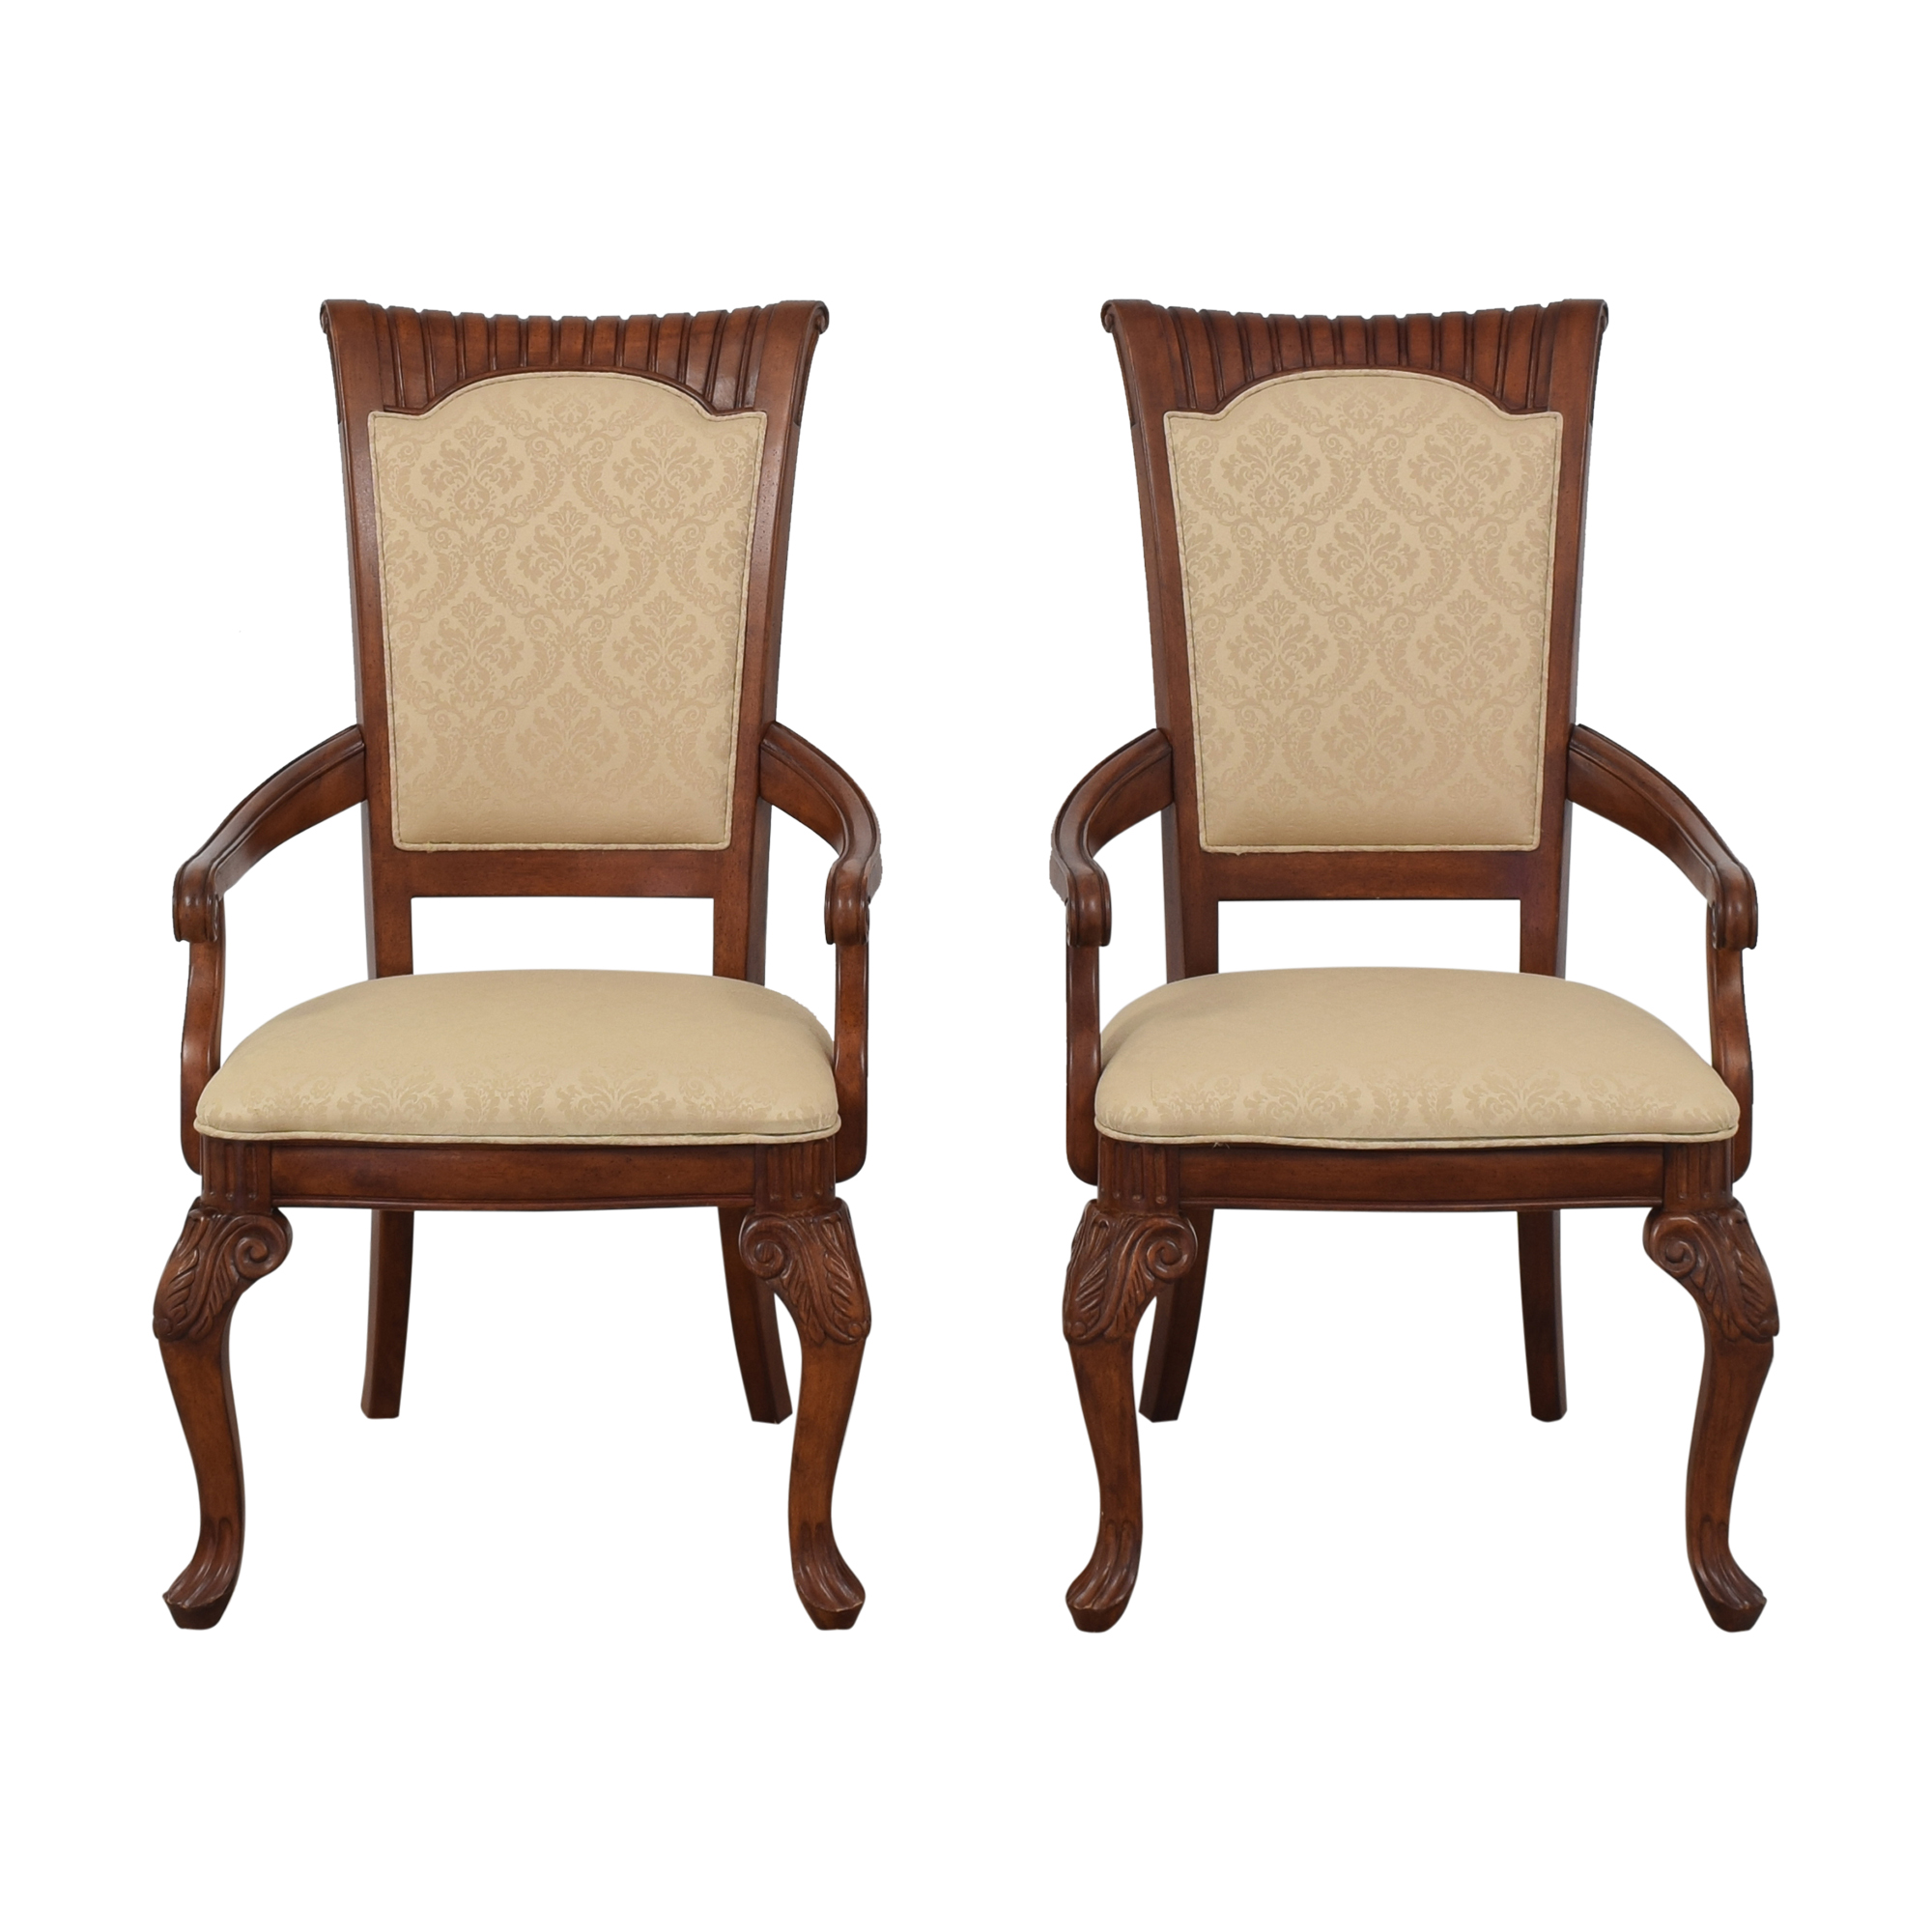 buy Stanley Corinthian Dining Chairs Stanley Furniture Chairs